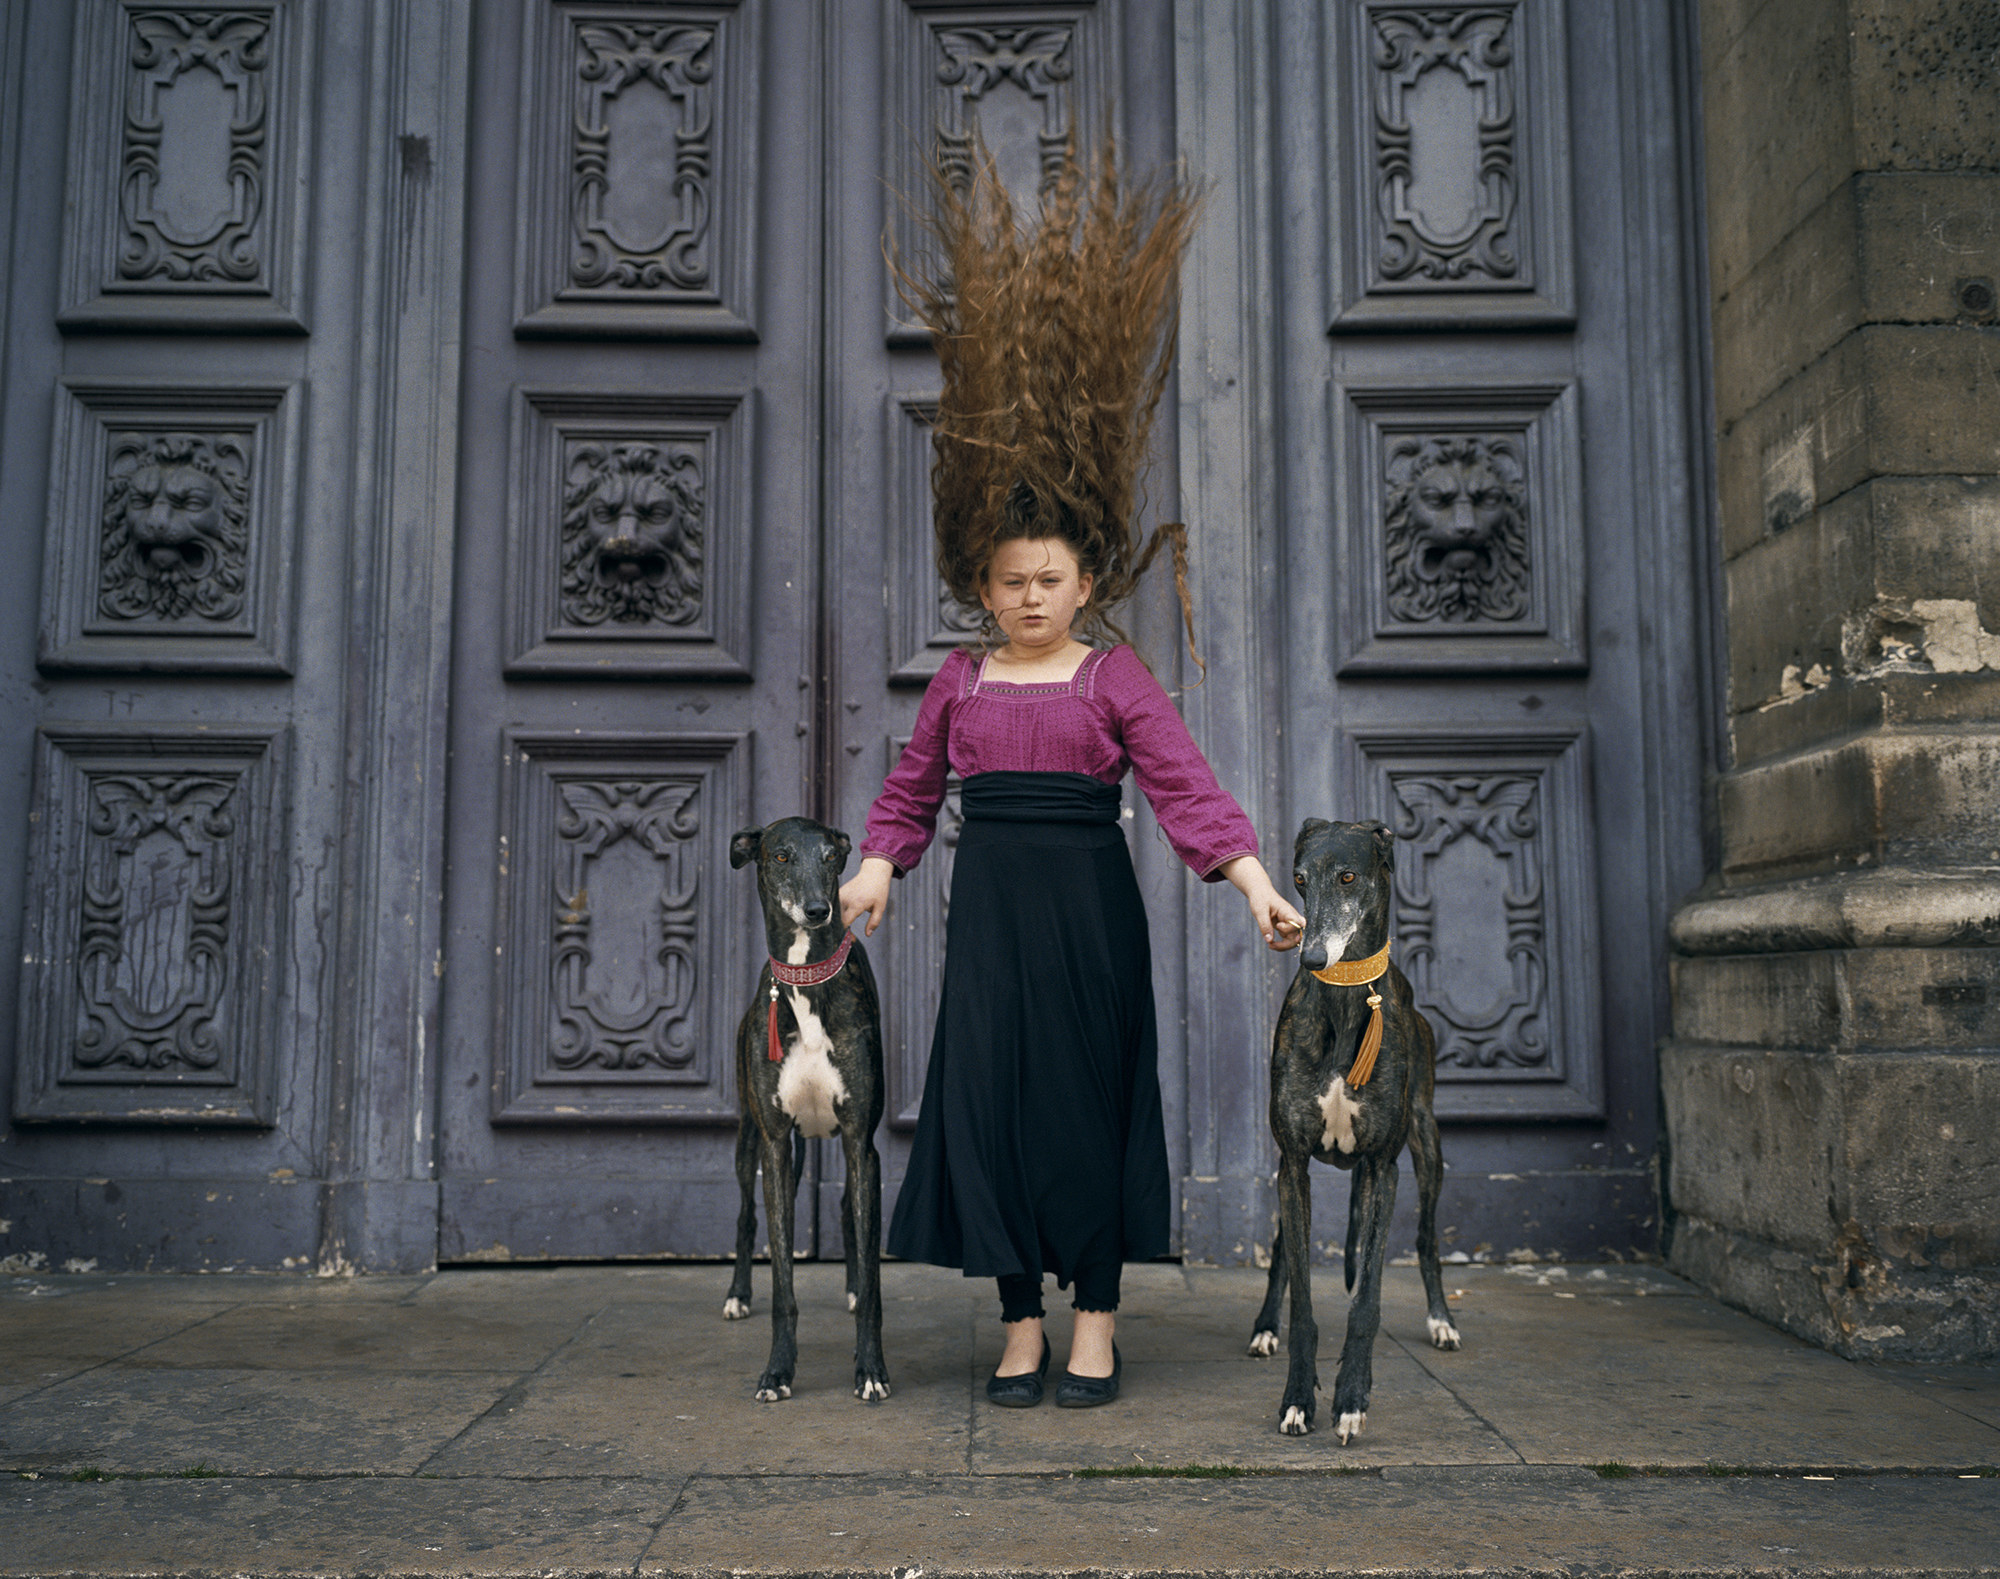 Two greyhounds stand on either side of a young girl, whose hair stands straight up as if she just jumped